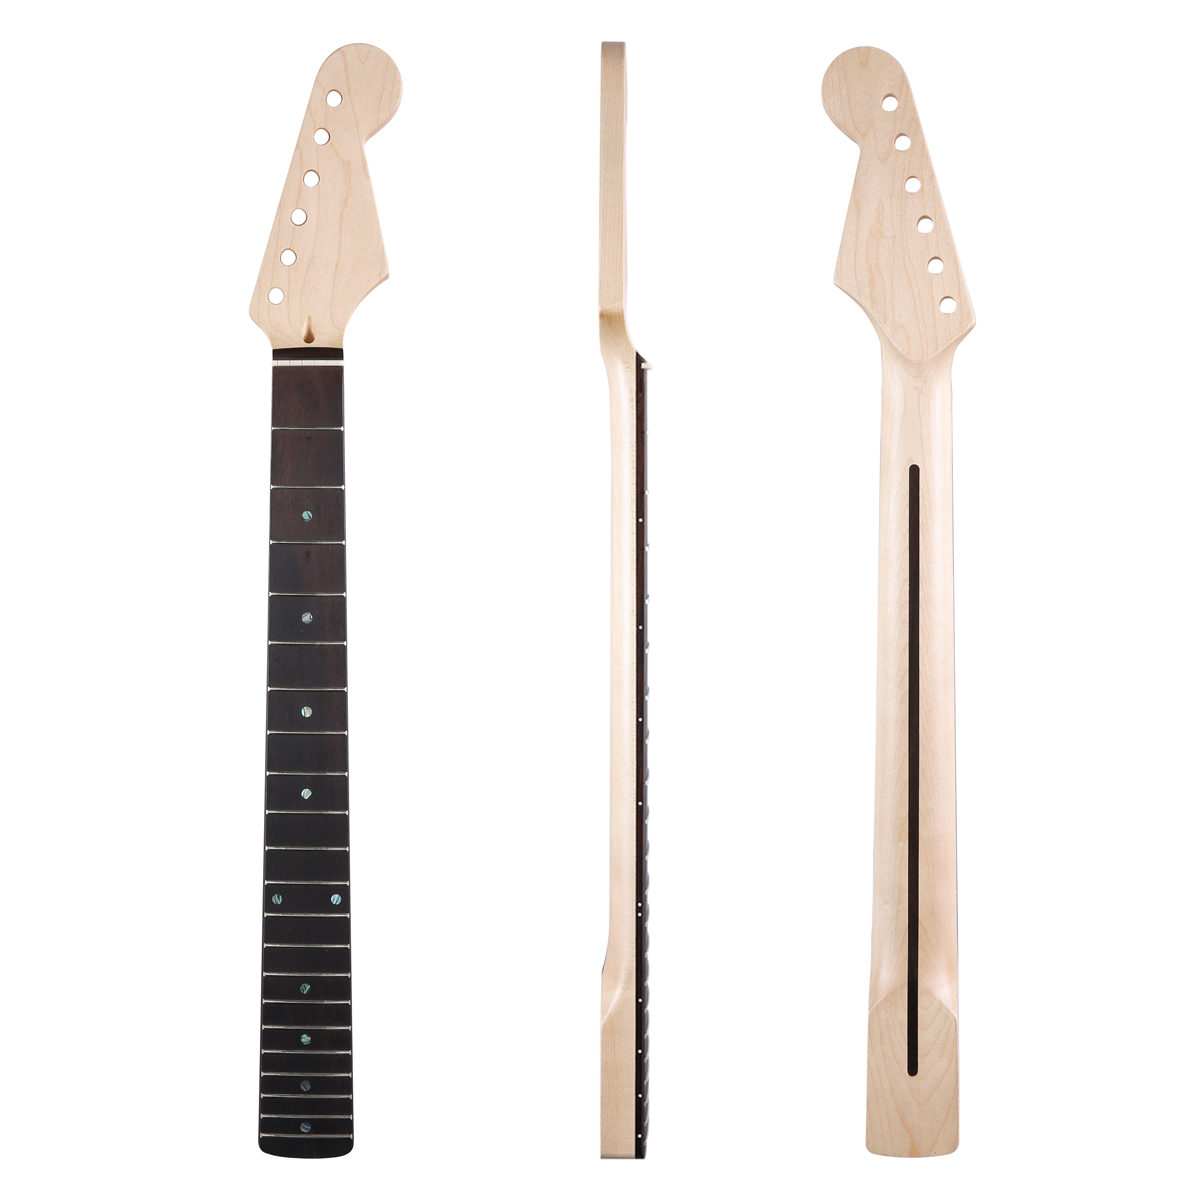 Dopro 21 Fret Canadian Maple Strat Guitar Neck with Rosewood Fingerboard 10mm Tuner Holes Abalone Inlay and Bone Nut dopro 22 fret canadian highly tiger flamed maple strat neck with rosewood fingerboard abalone inlay bone nut for stratocaster